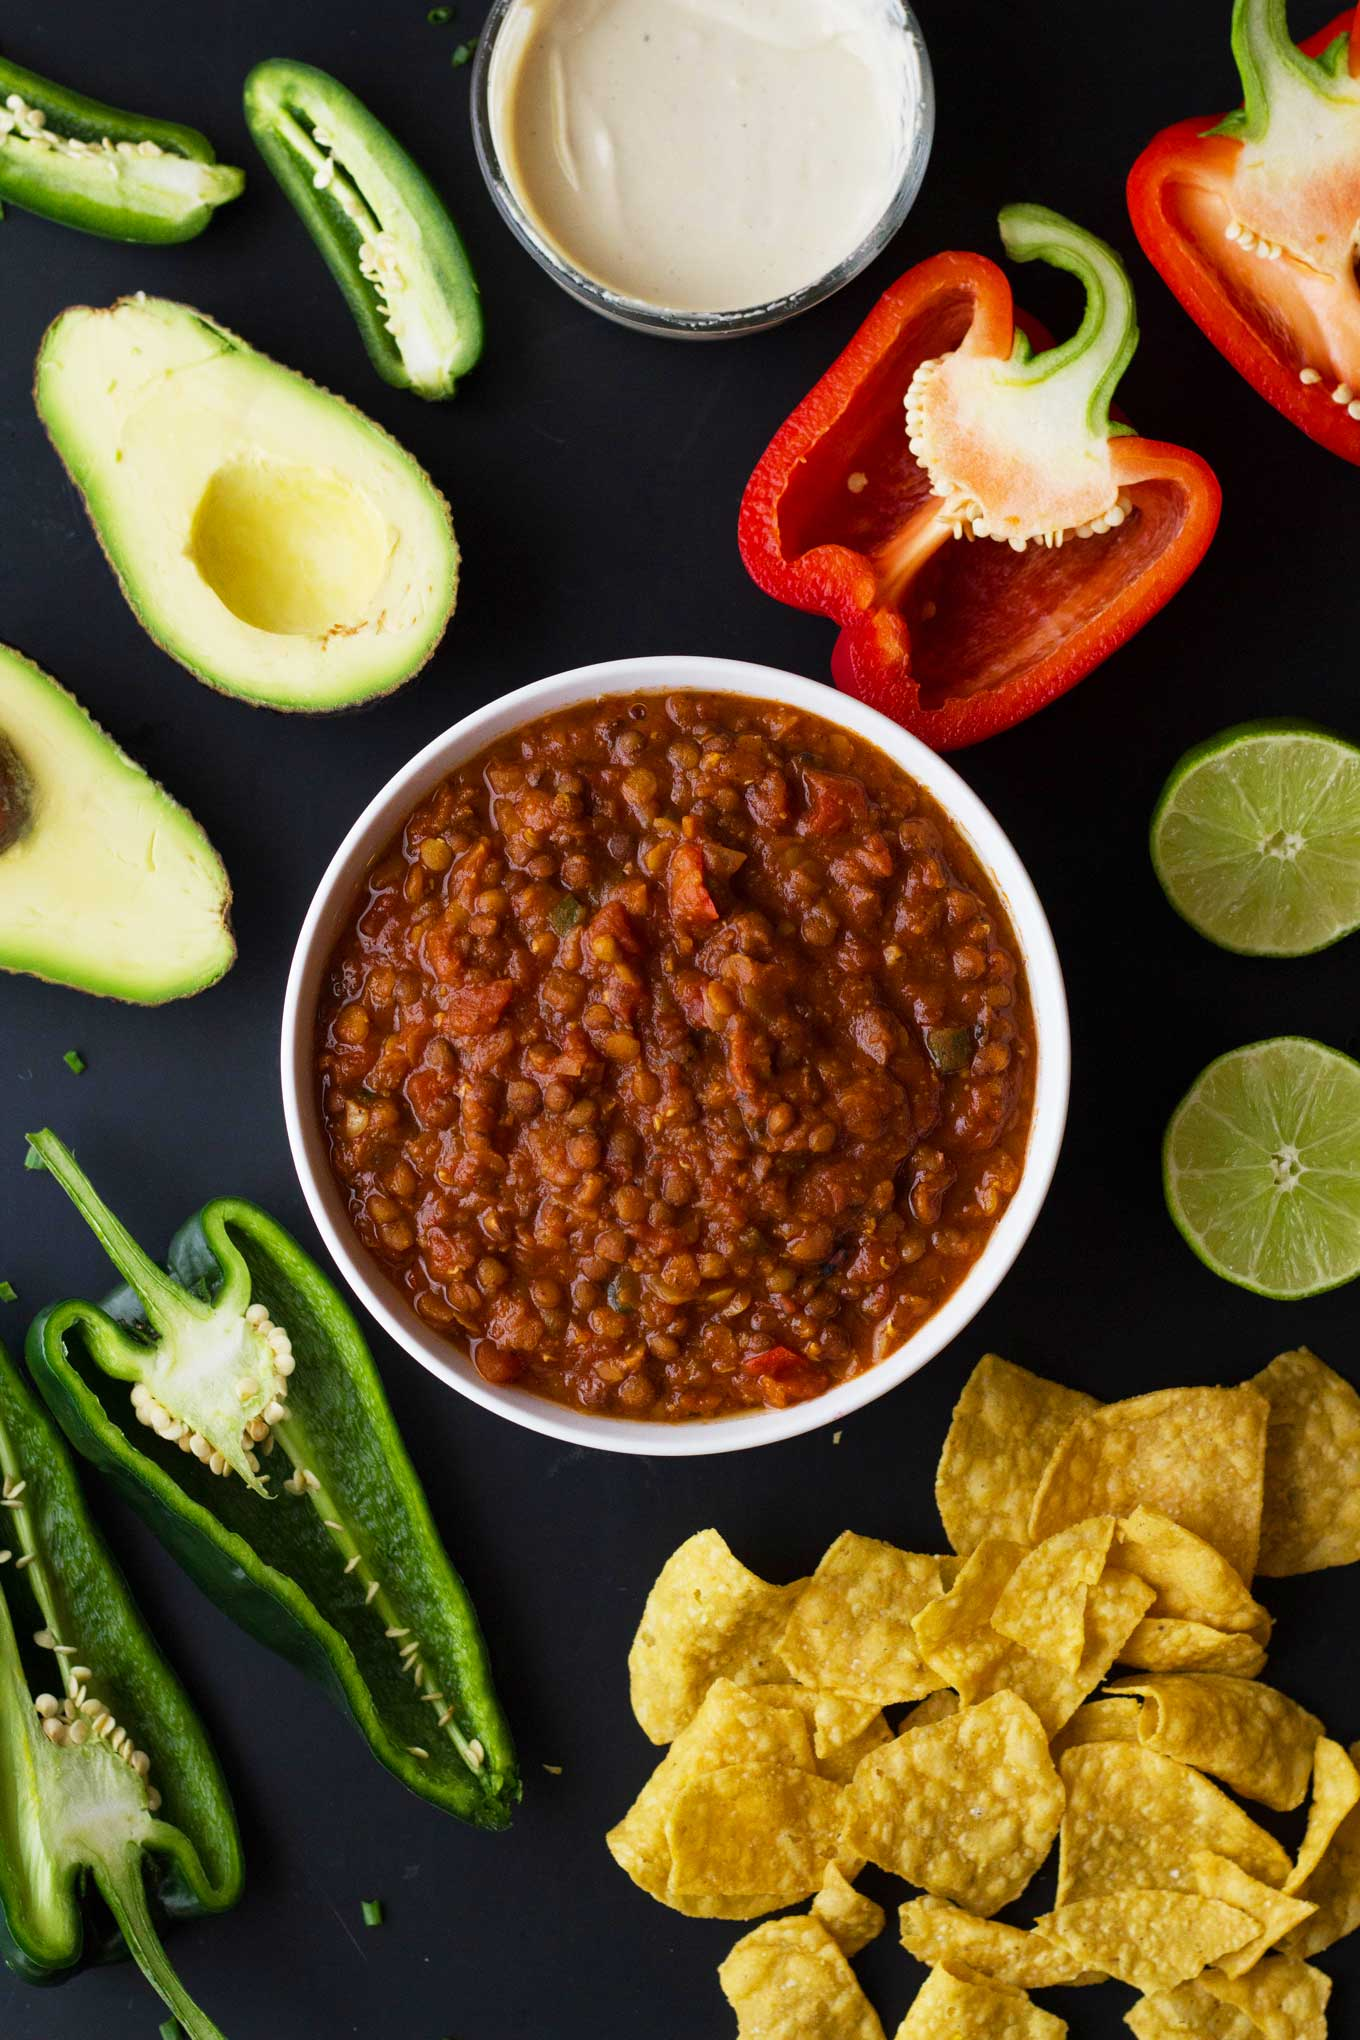 Pressure Cooker Vegan Chili | Instant Pot Vegan Chili | Plant-based Chili | Healthy Chili | http://www.eatwithinyourmeans.com/